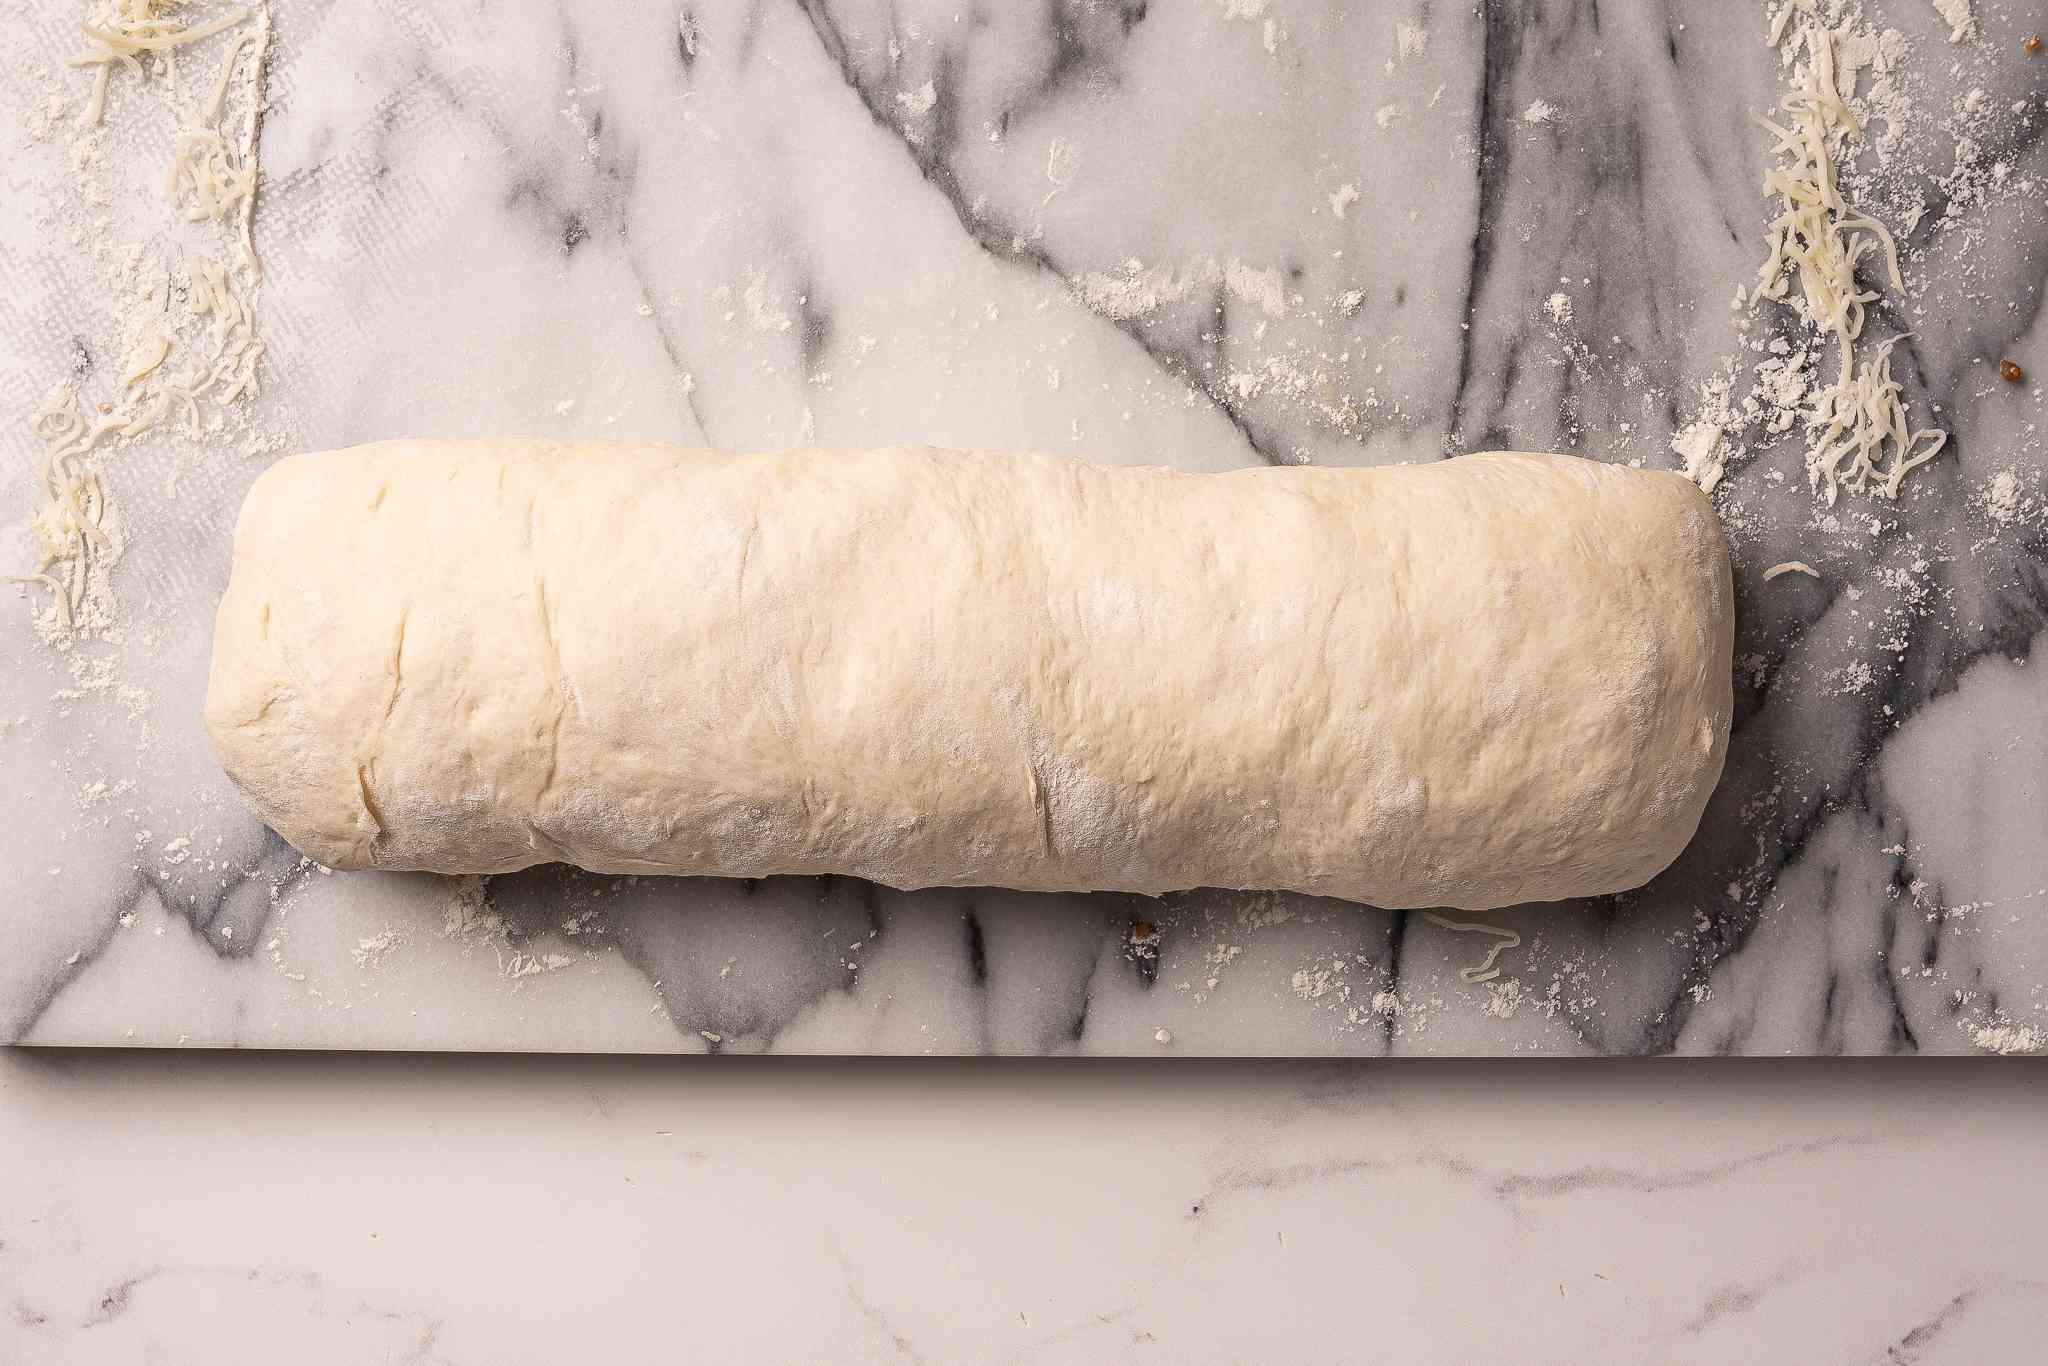 Dough rolled into a log with sausage and cheese inside